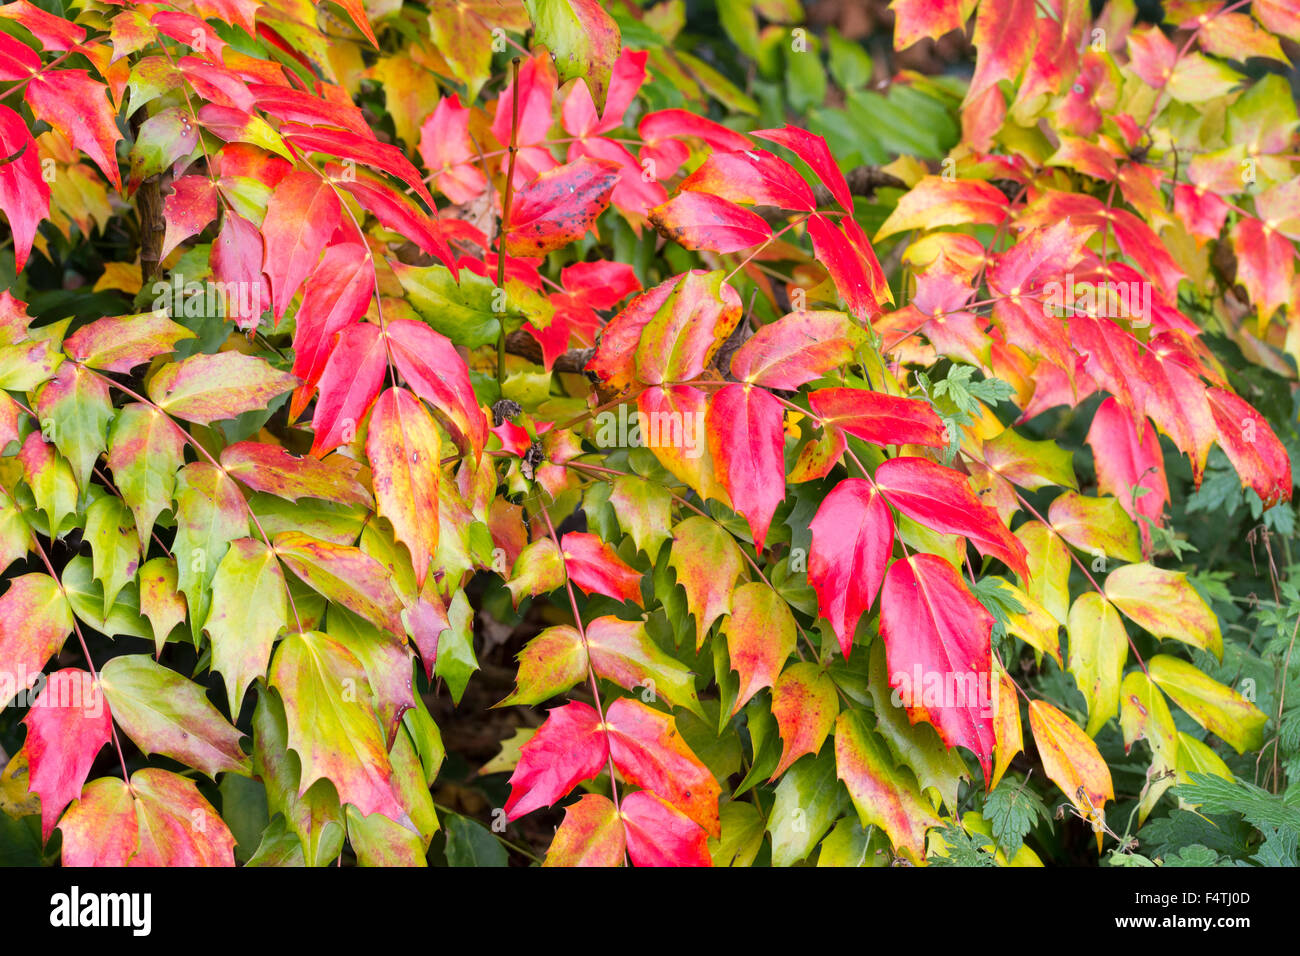 Spiky Shrub Stock Photos Spiky Shrub Stock Images Alamy